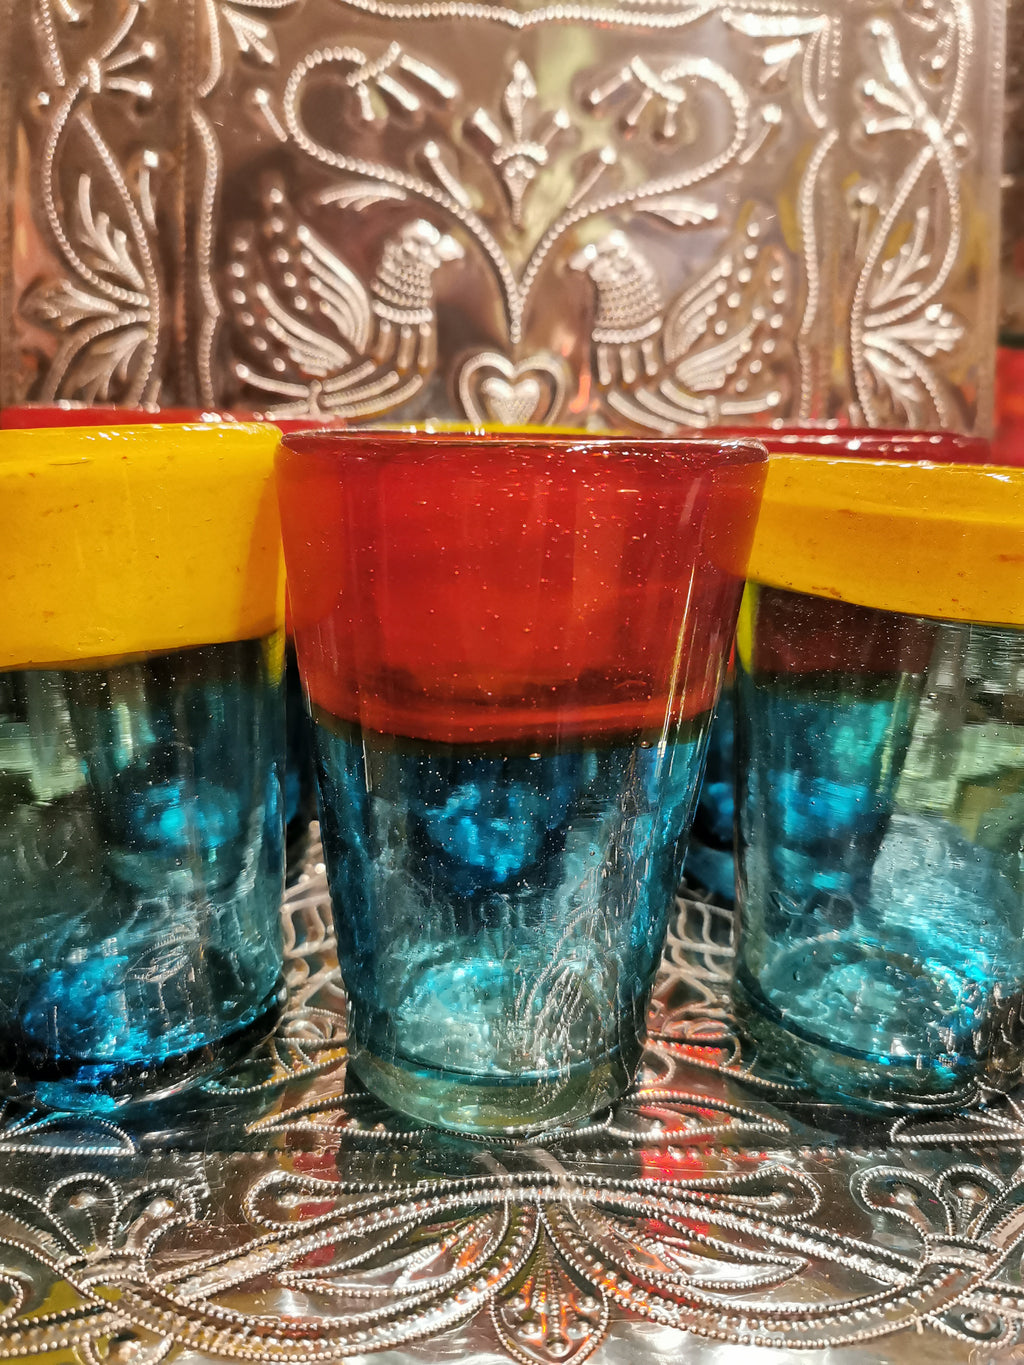 Beautifully handmade in Mexico from recycled glass, these colourful tumblers are super sturdy and gorgeous too!!  Designs vary due to their handmade nature.   Dimensions 8cm x 8cm x 12cm high.